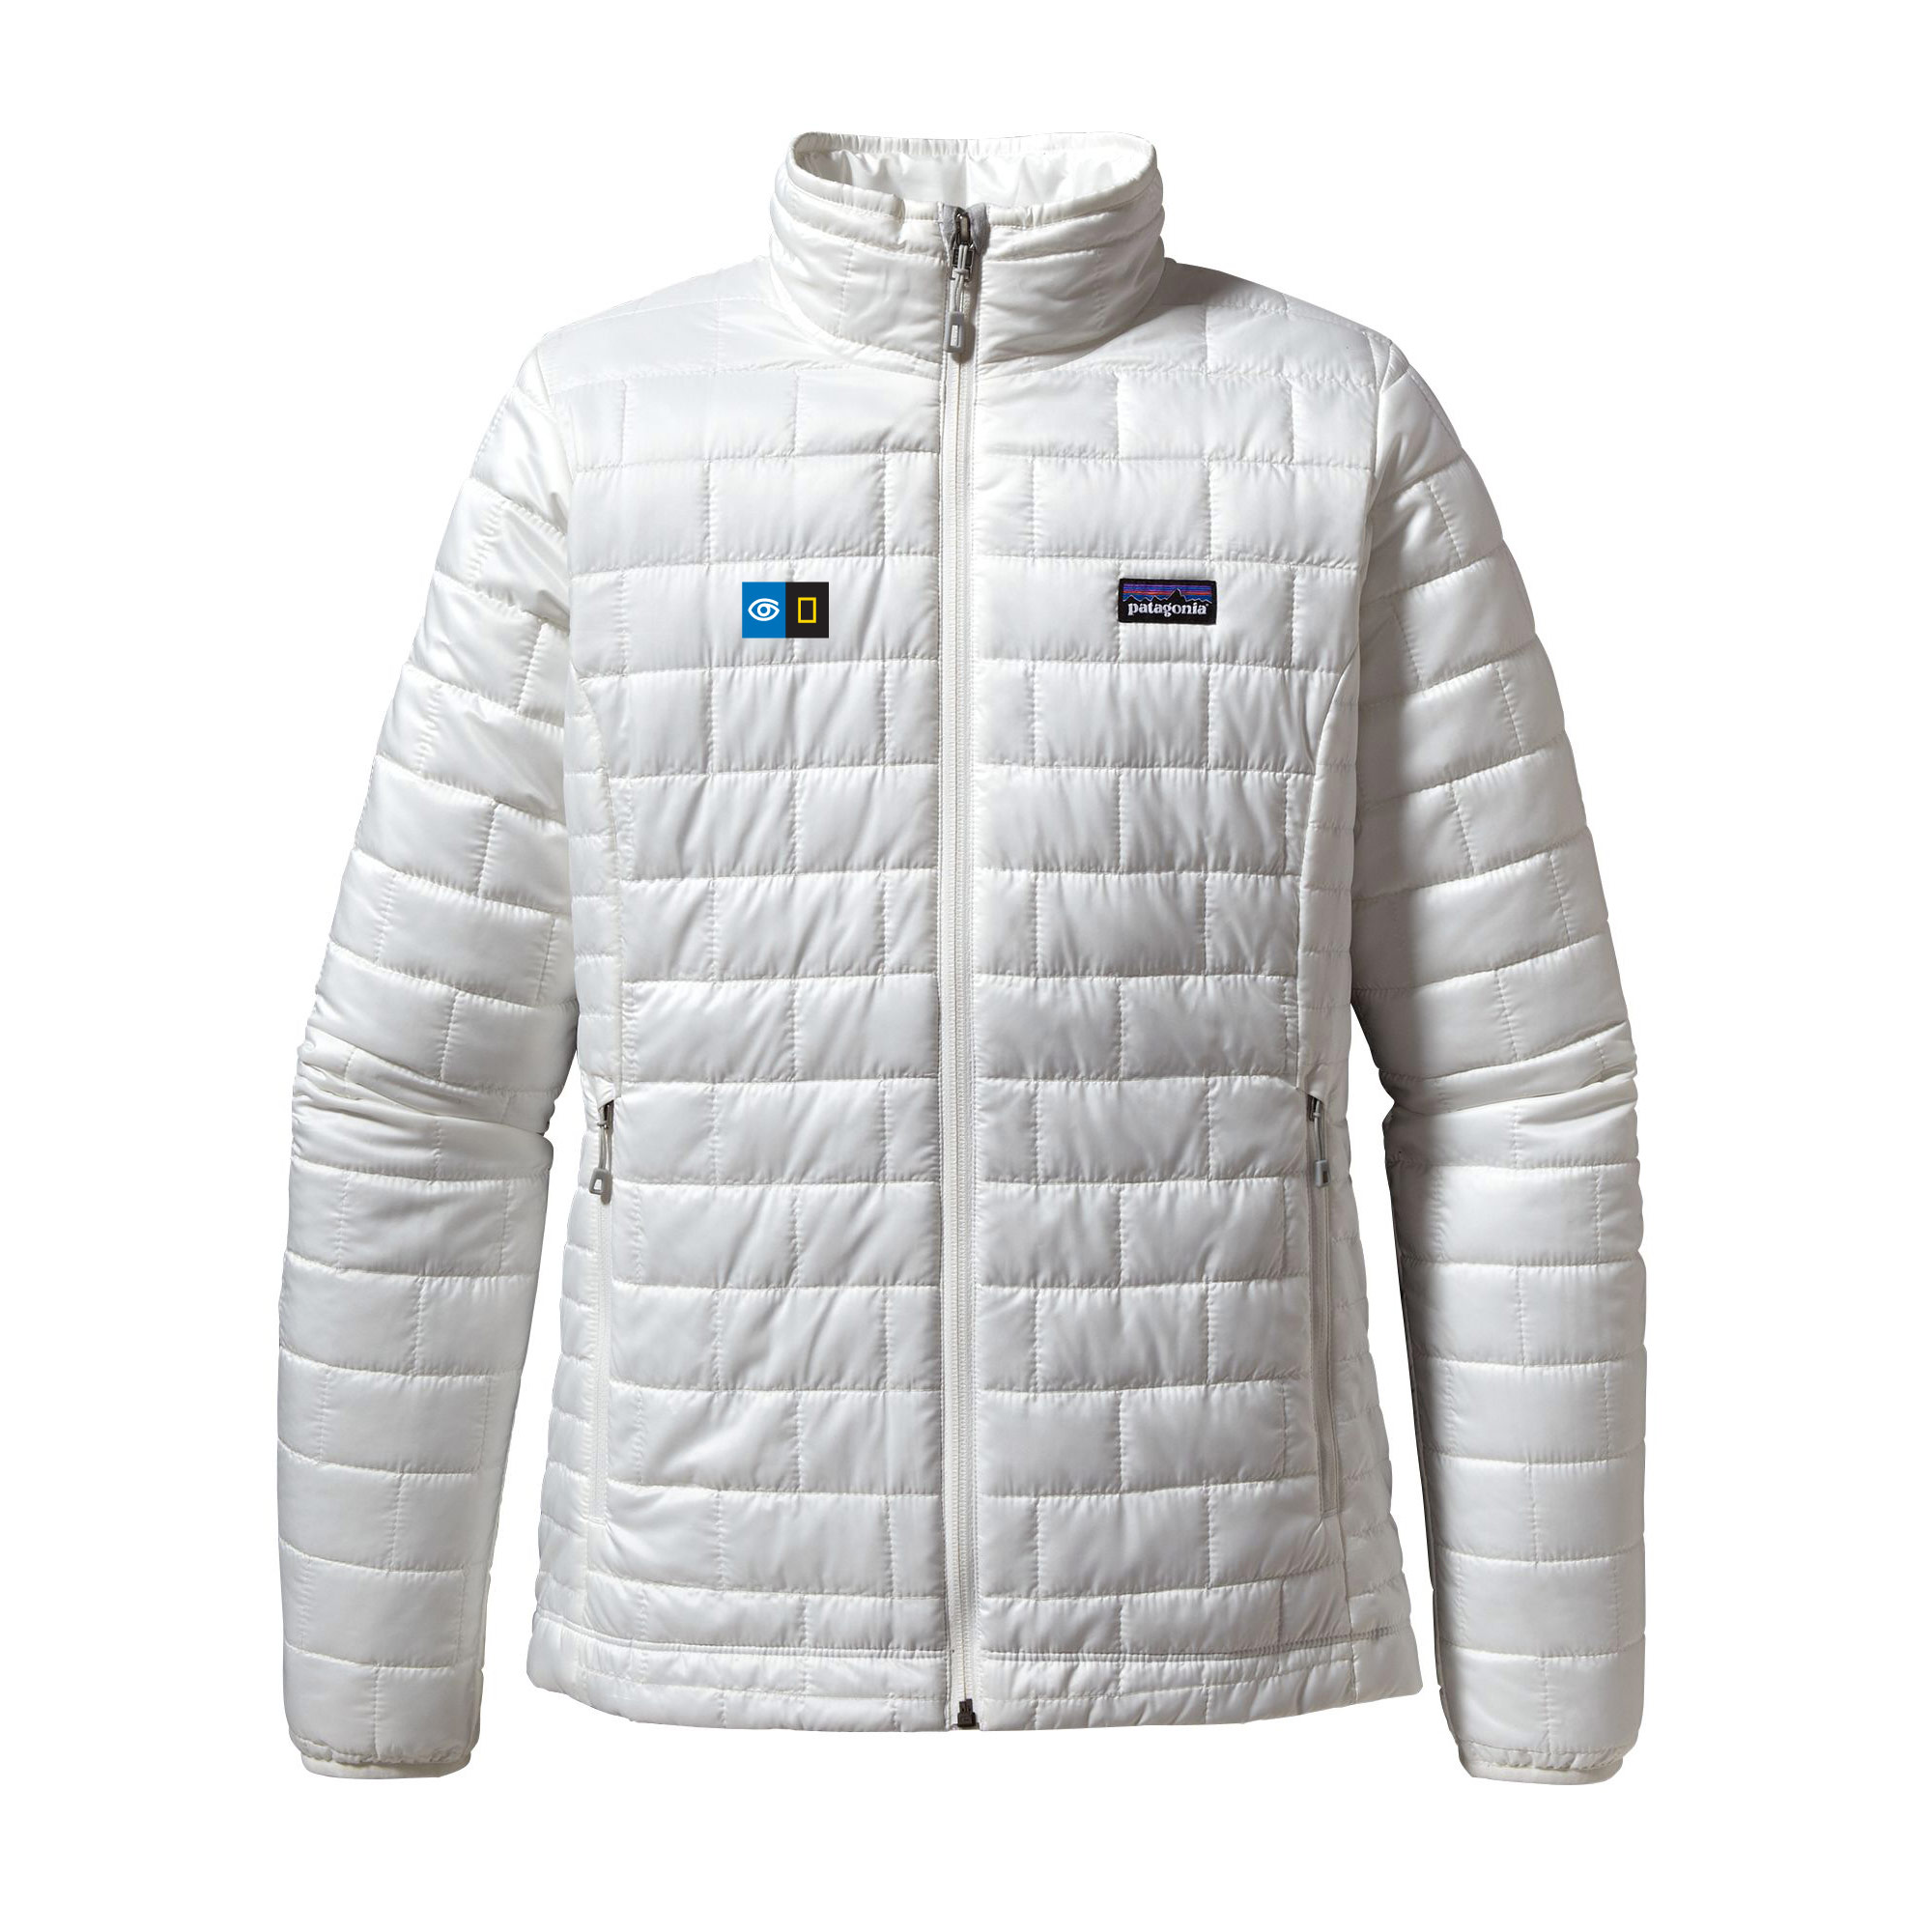 Women's Nano puff Jacket with Embroidered Logo